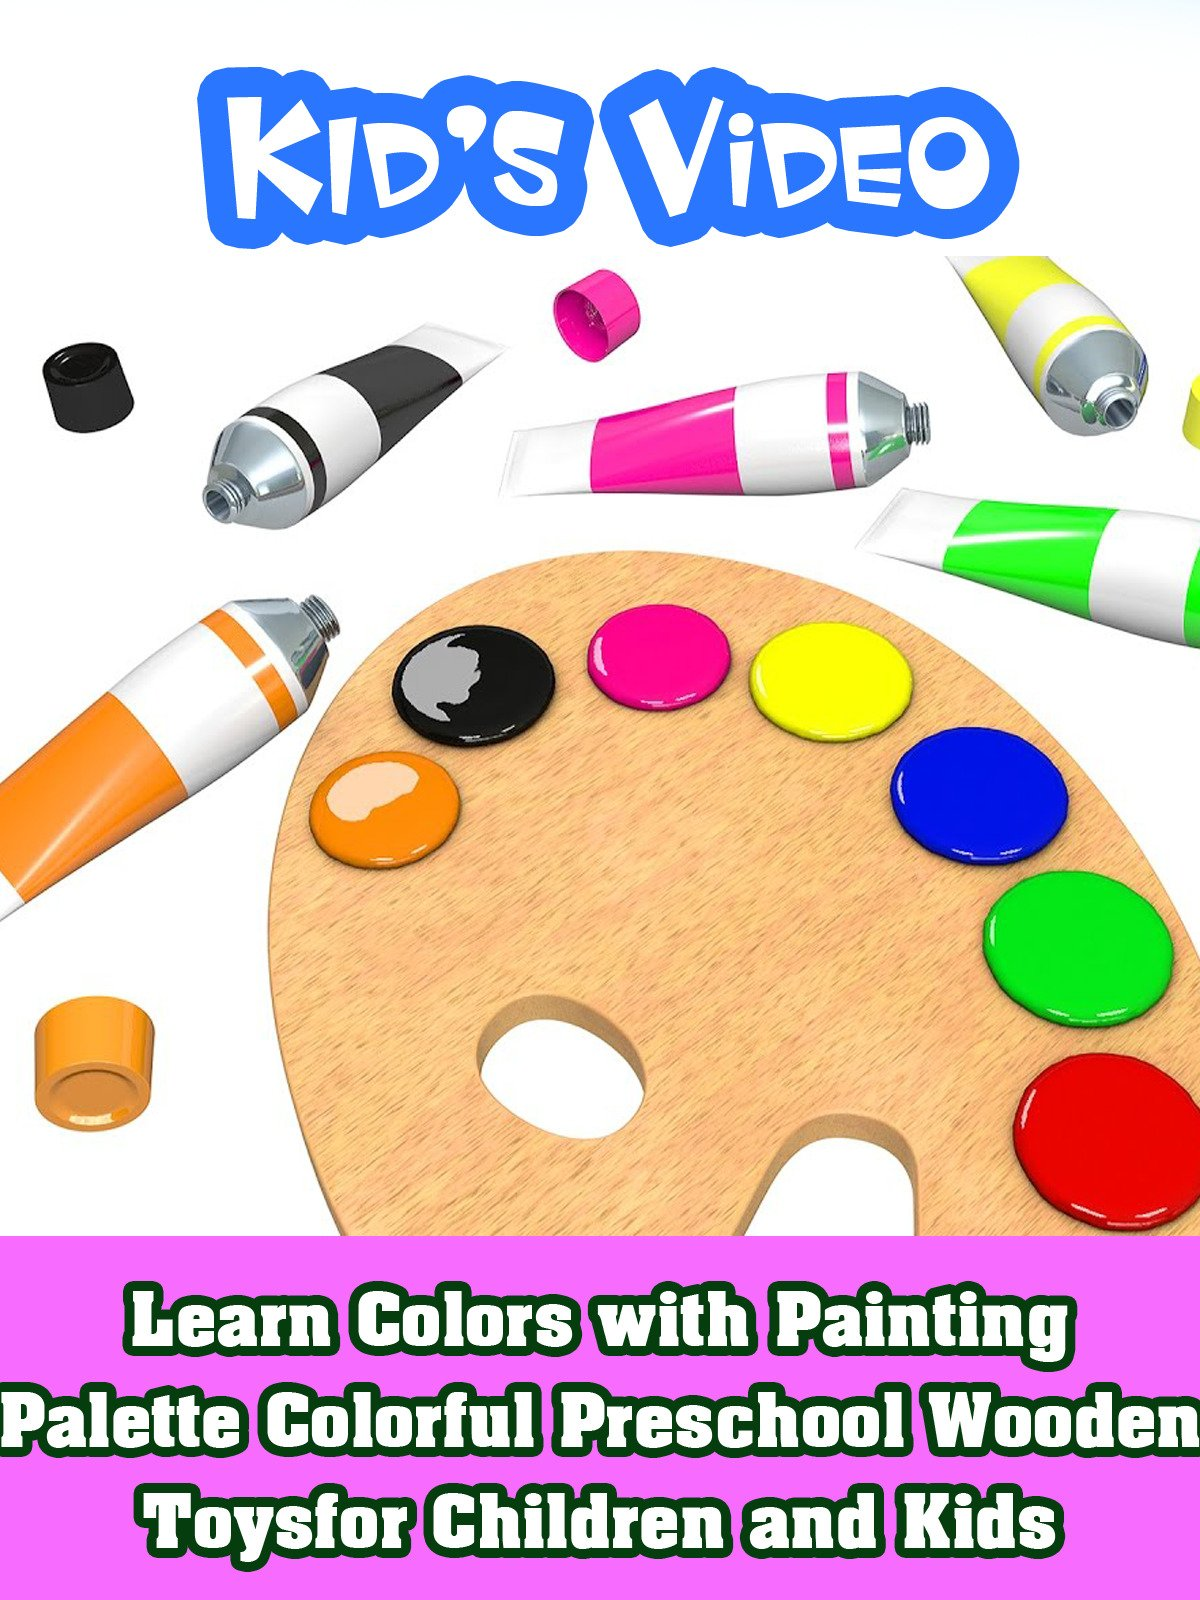 Learn Colors with Painting Palette Colorful Preschool Wooden Toys for Children and Kids on Amazon Prime Instant Video UK